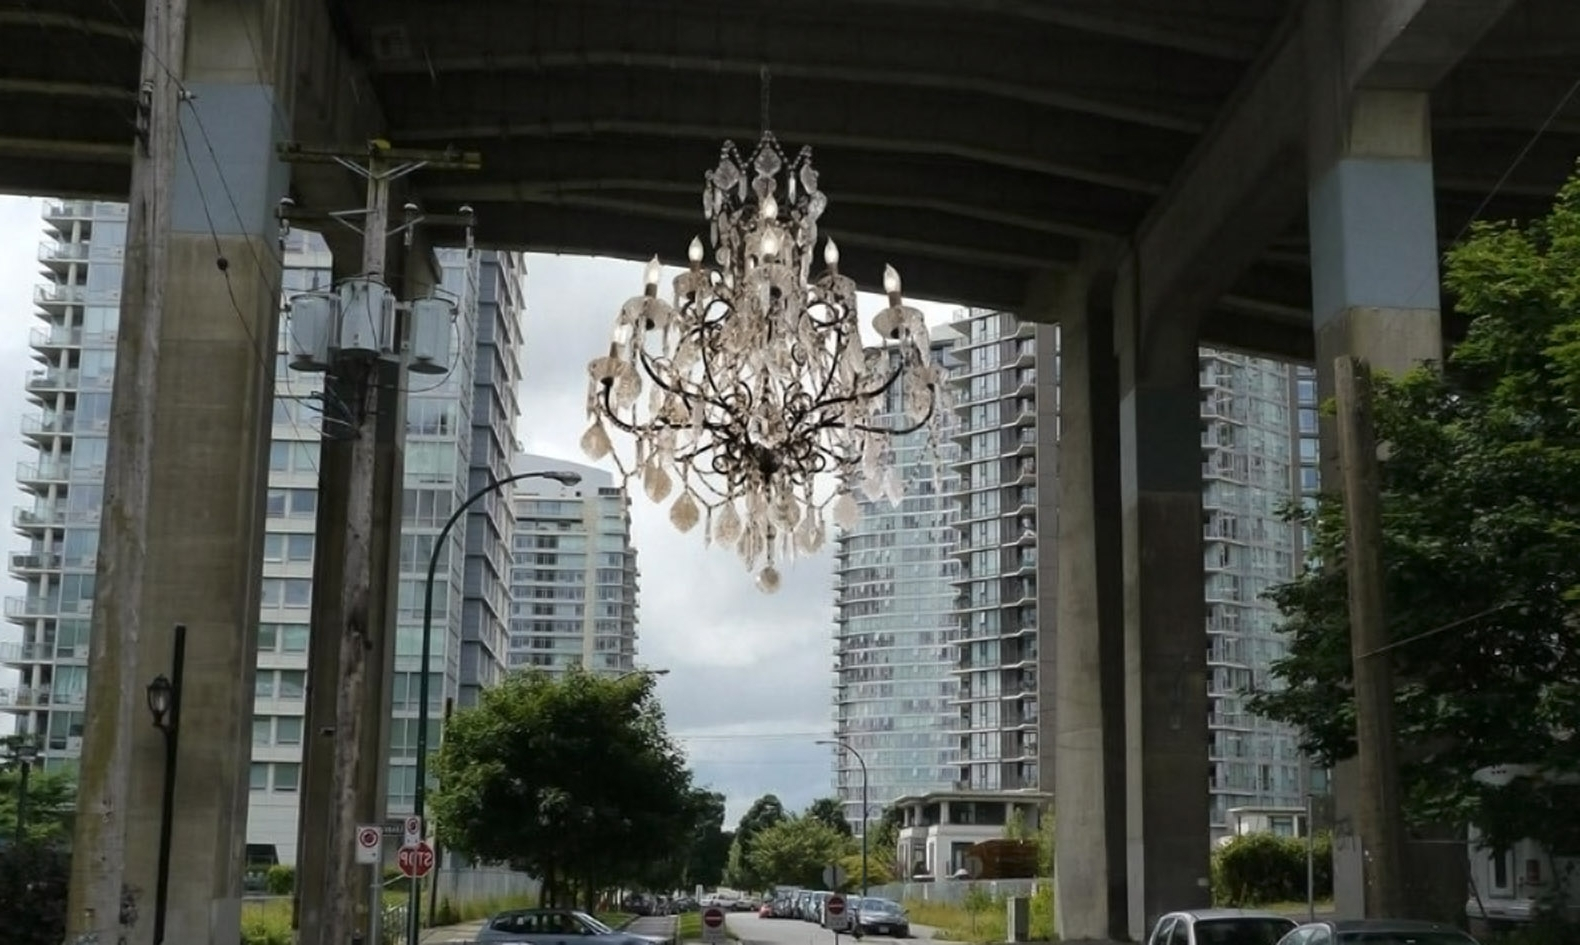 Vancouver Lights Up A Dark Highway Overpass With A Massive For Most Recent Massive Chandelier (Gallery 7 of 20)